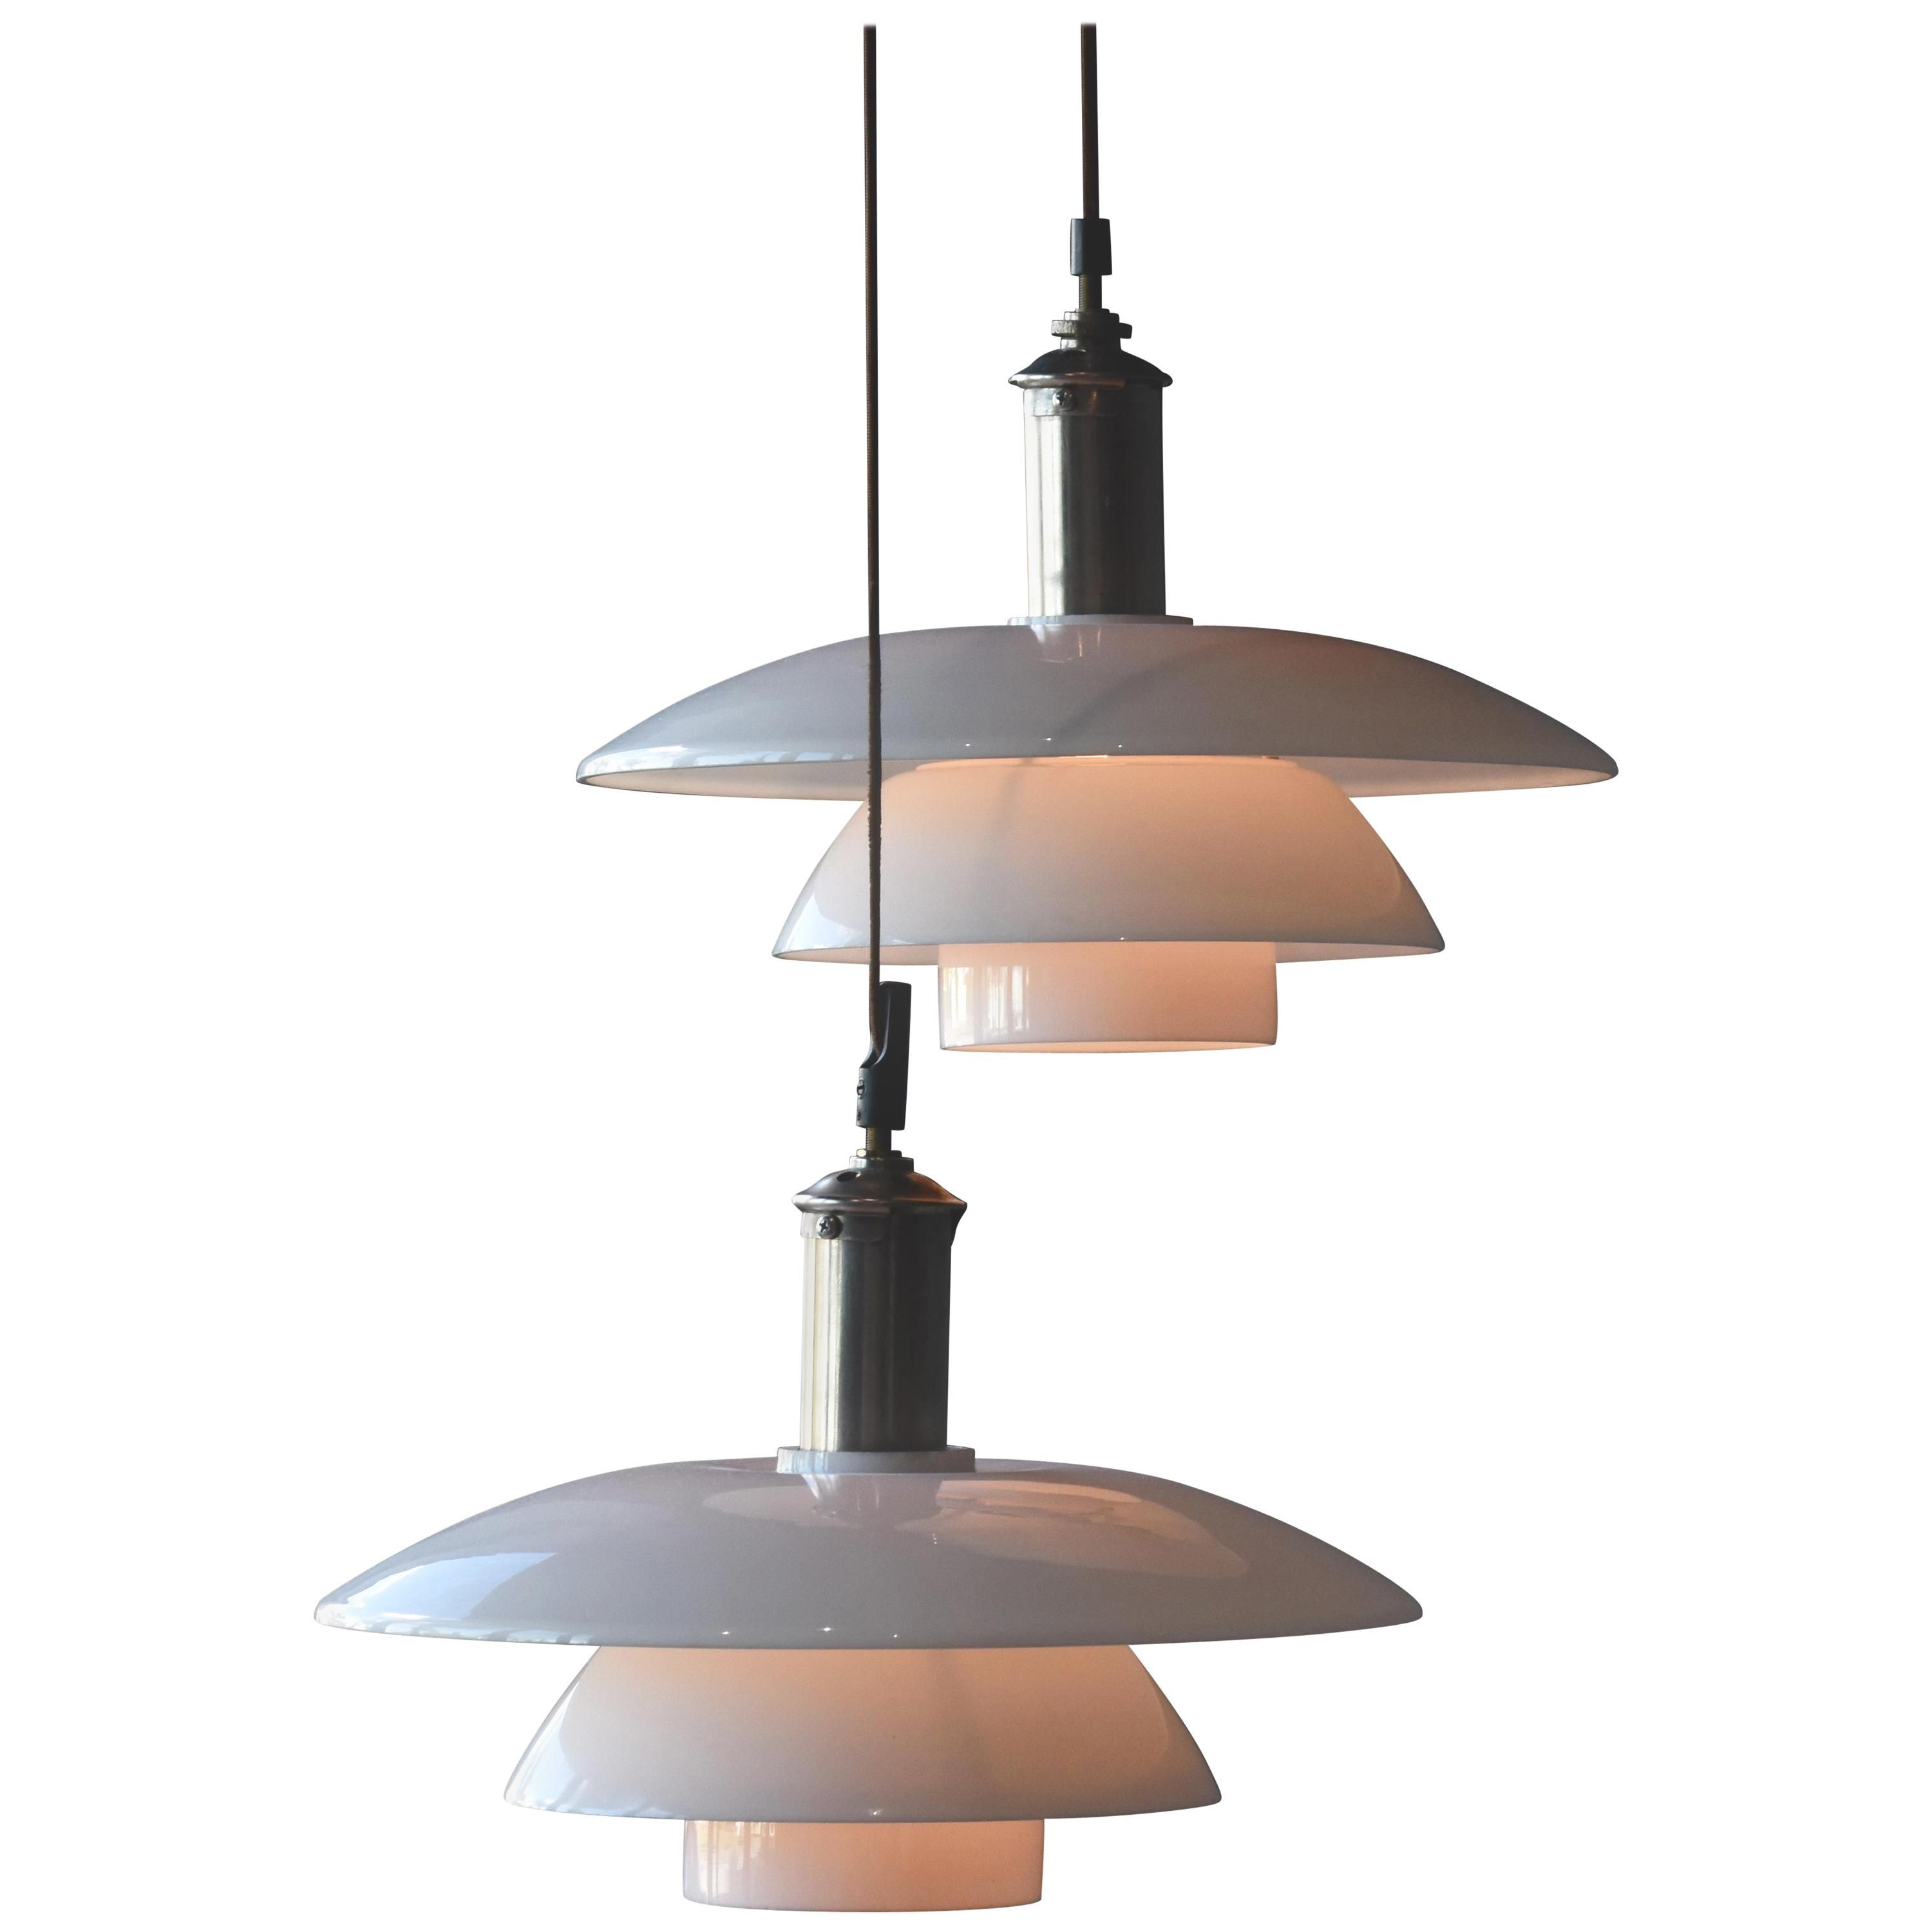 Image result for 1940s light fixtures